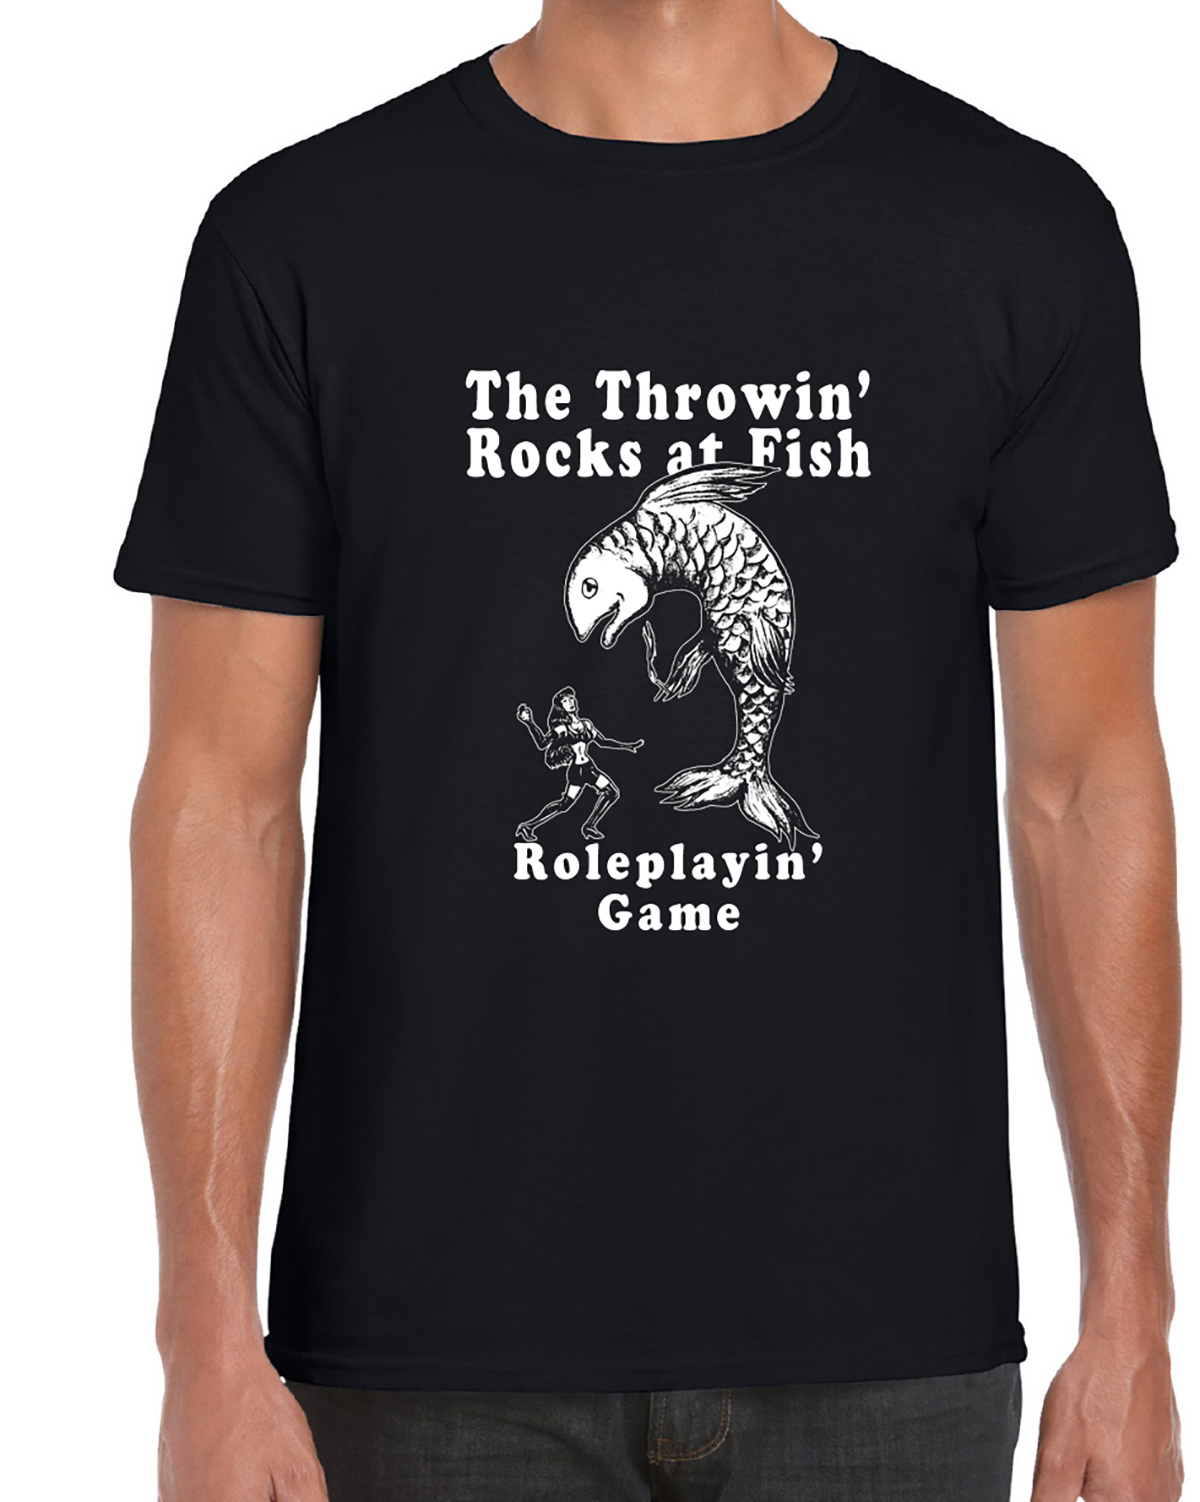 The Throwin' Rocks at Fish Roleplaying Game T-Shirt